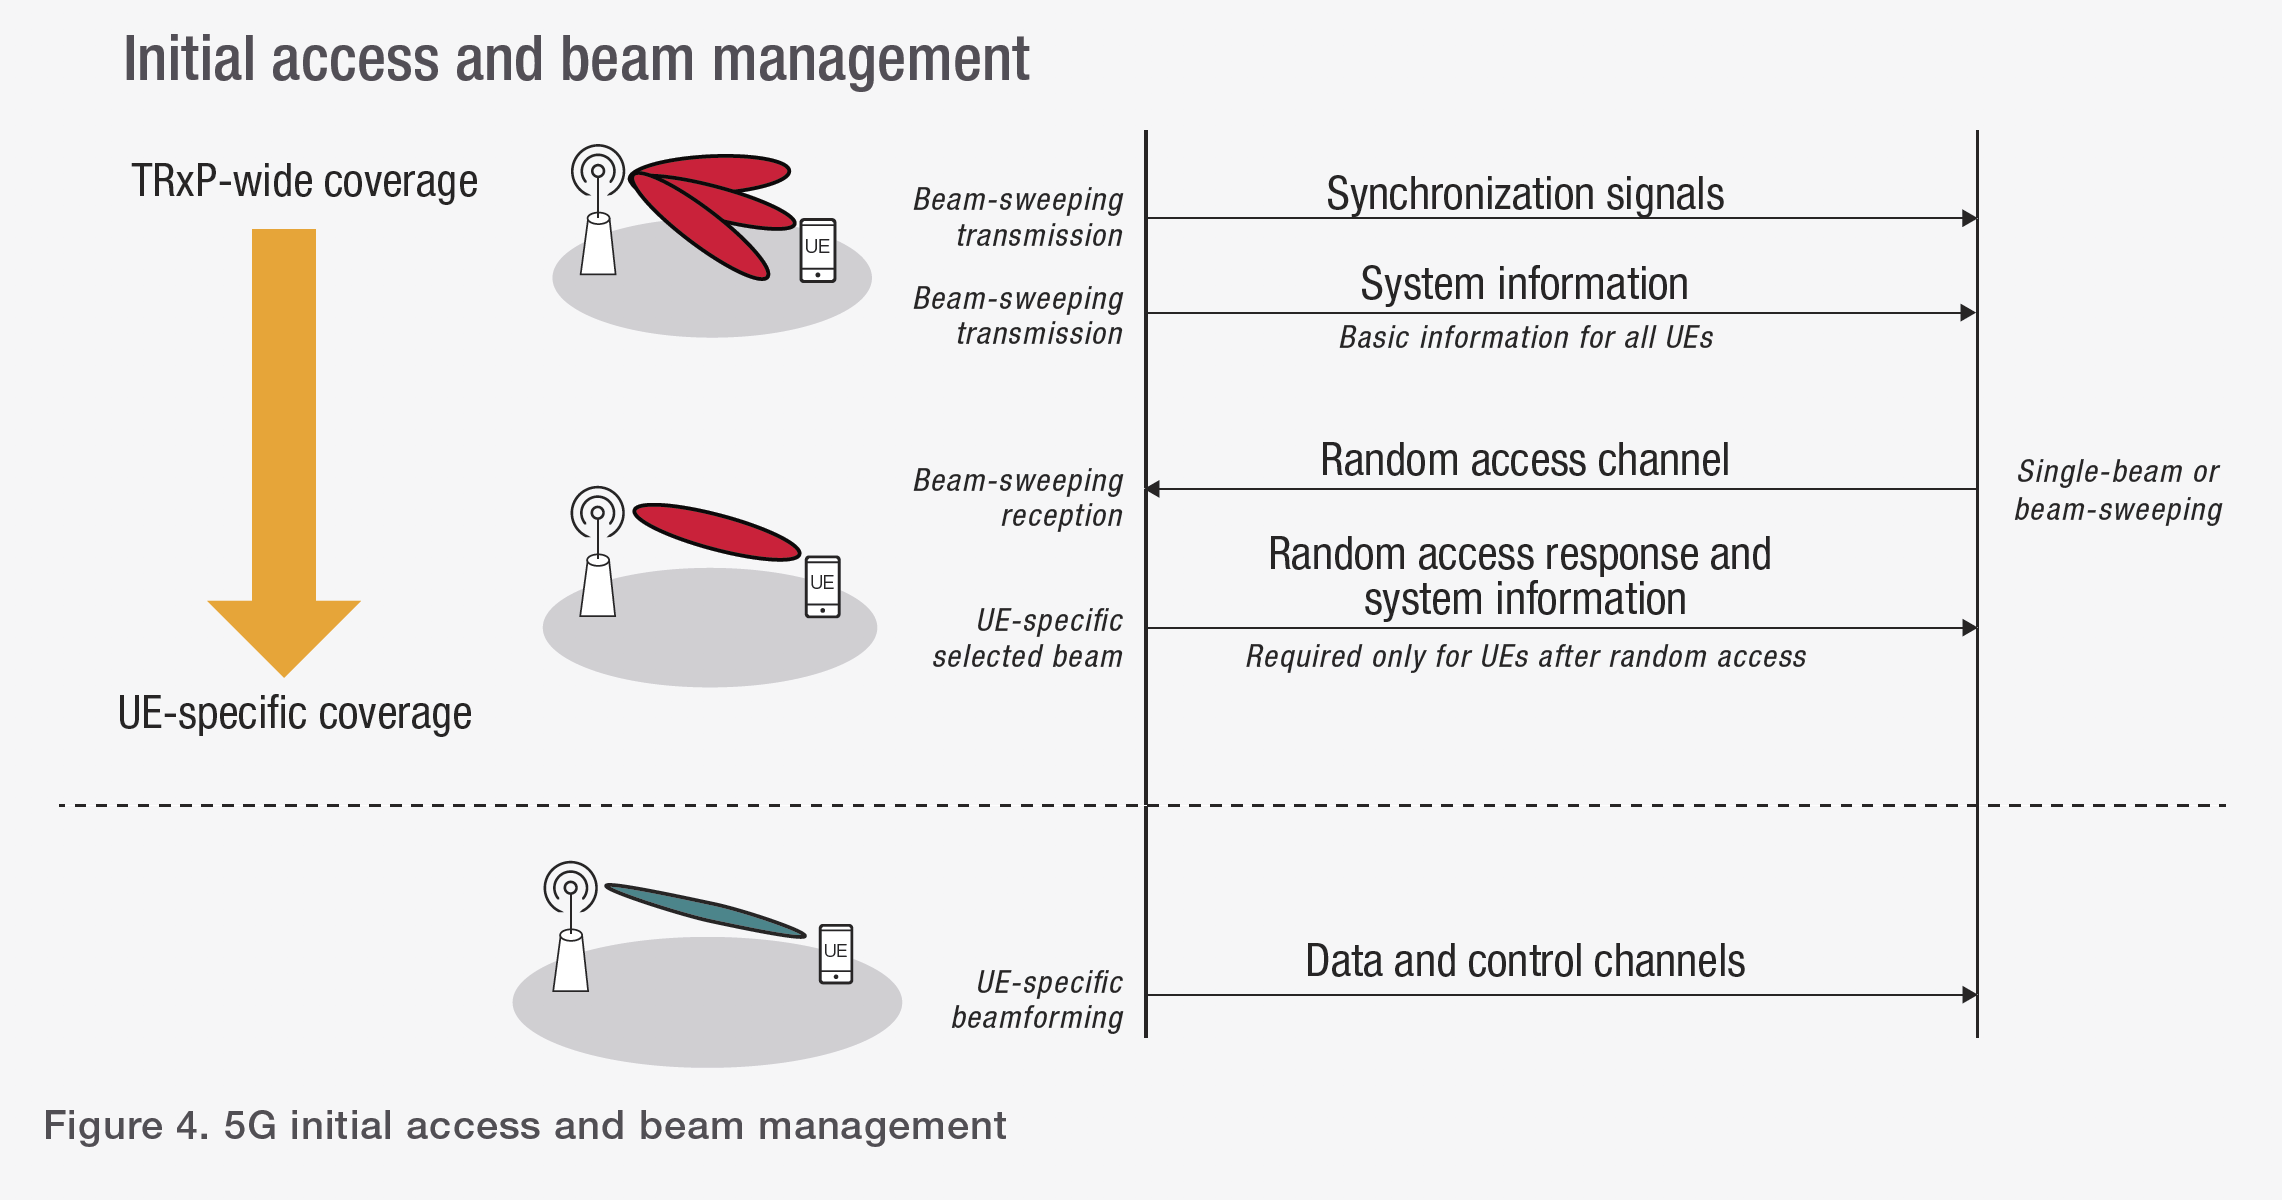 Figure 4. 5G initial access and beam management